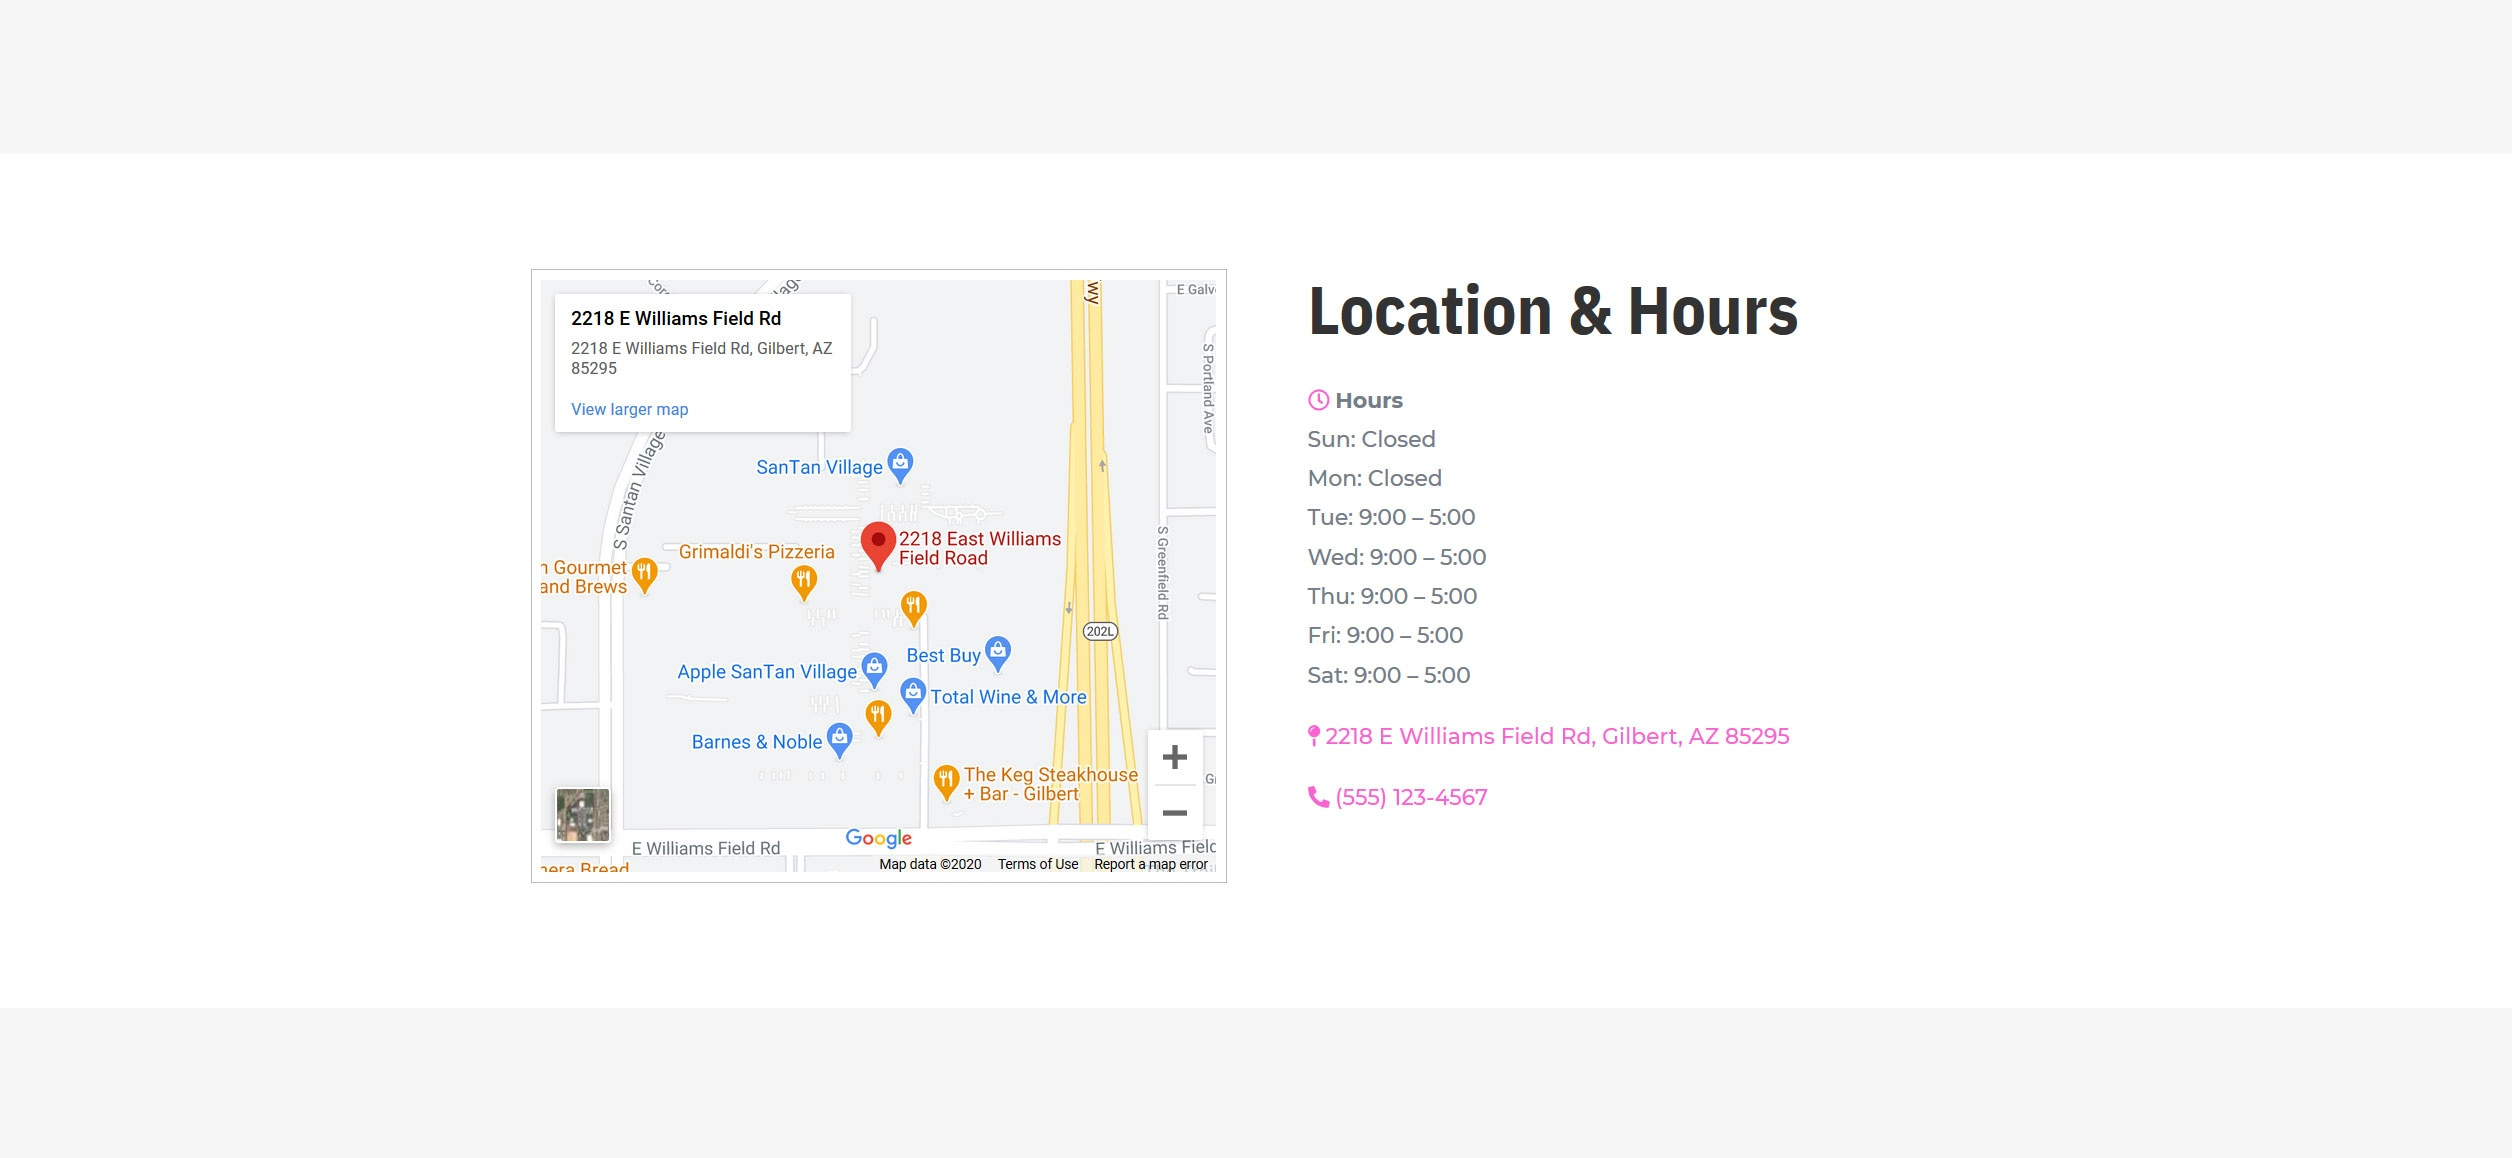 Website for Nail Salons v1 - Location Map & Hours